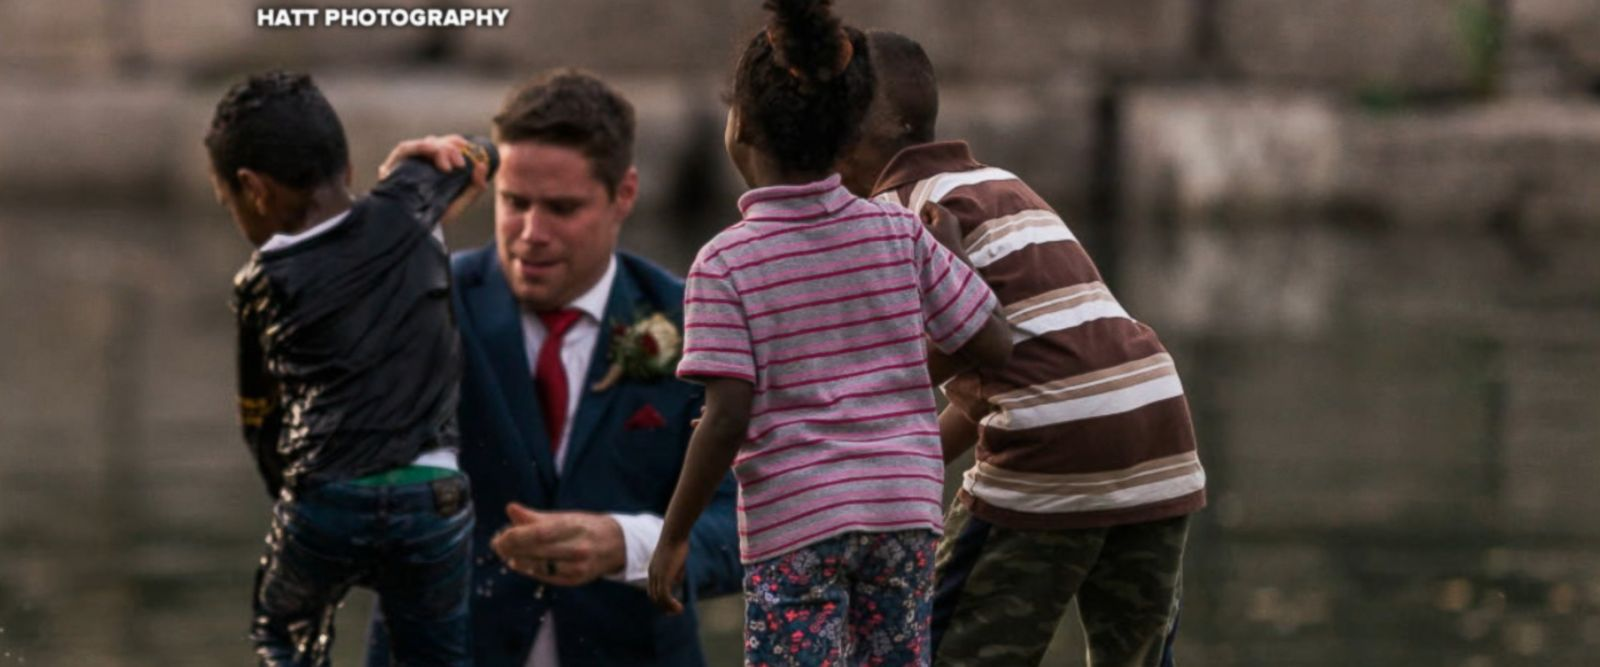 Clay Cook of Cambridge, Canada, rescued a little boy struggling in nearby water during his wedding photo shoot on Sept. 22.